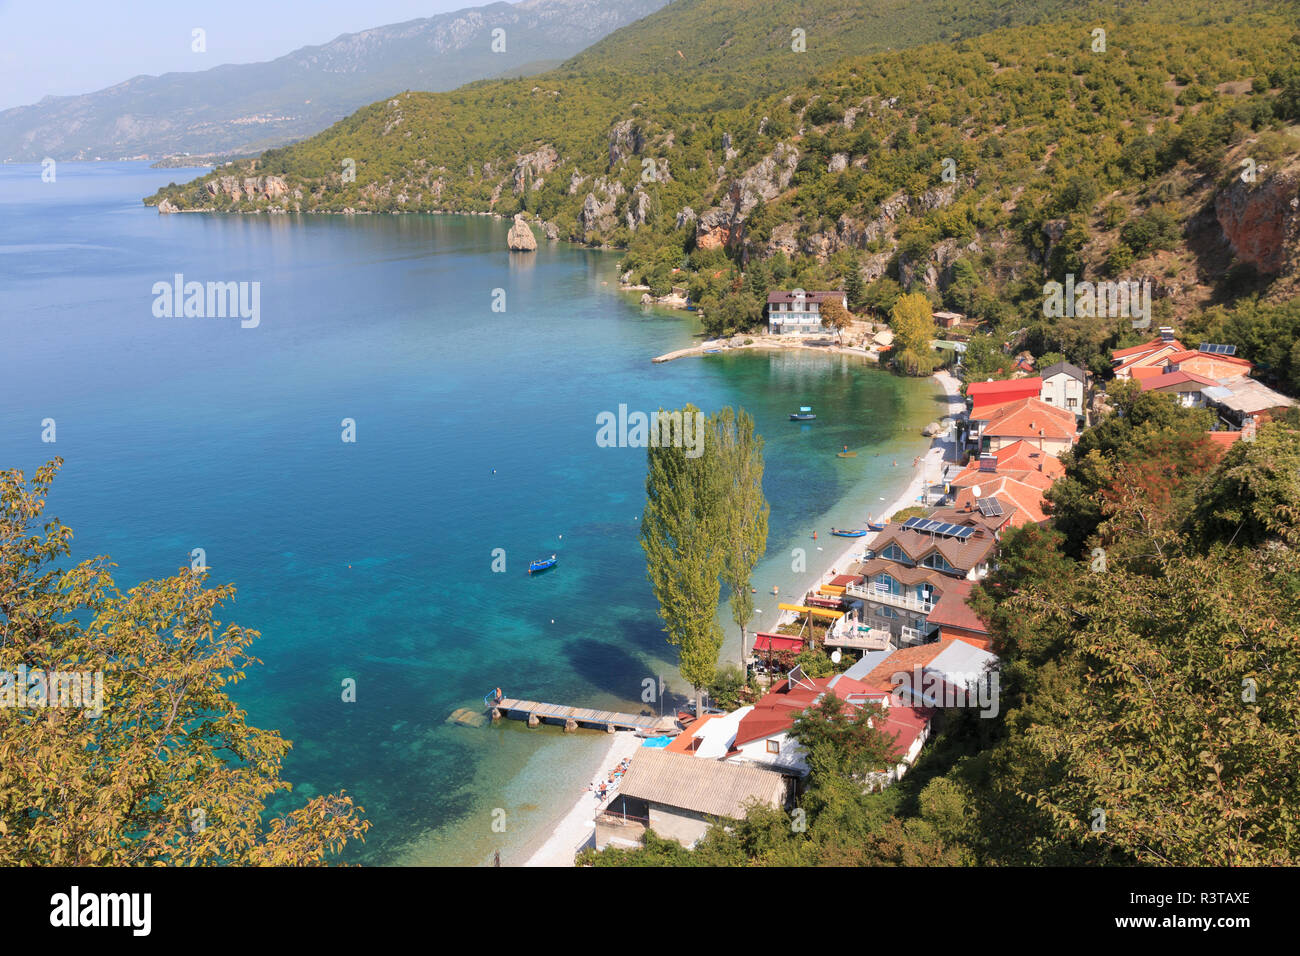 Macedonia, Ohrid and Lake Ohrid, coastline, beach areas, rocky cliffs. Ohrid is both a UNESCO World Heritage Cultural and Natural site. - Stock Image